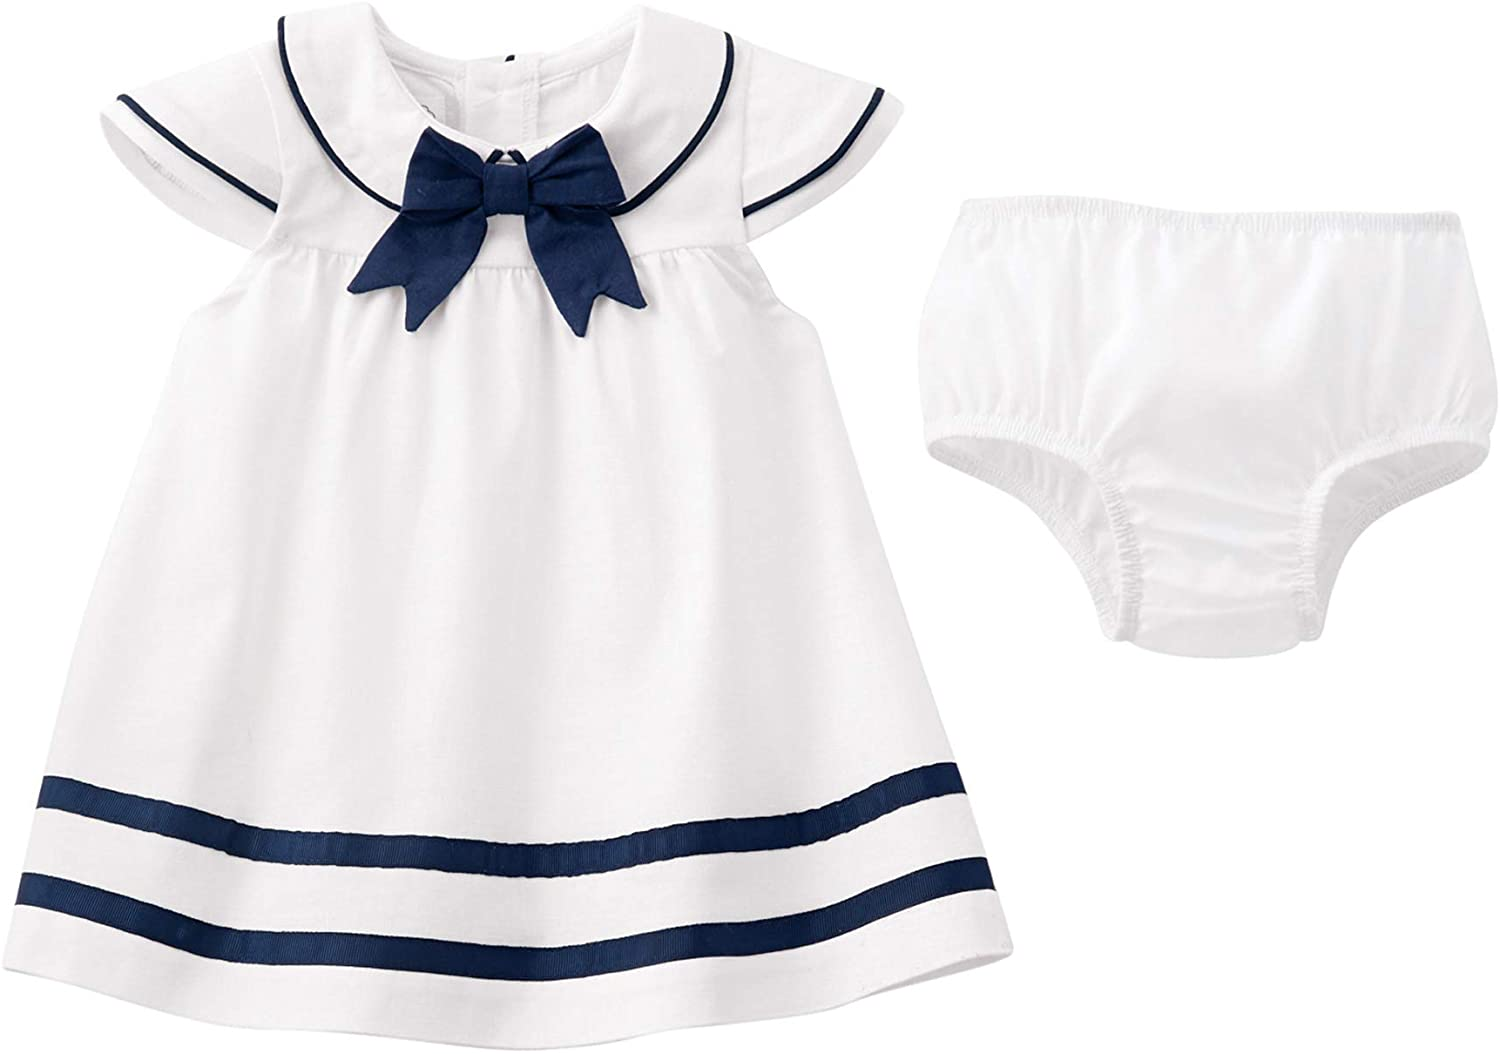 Mud Pie Baby Girls' Nautical Dress, White, 6-9 Months